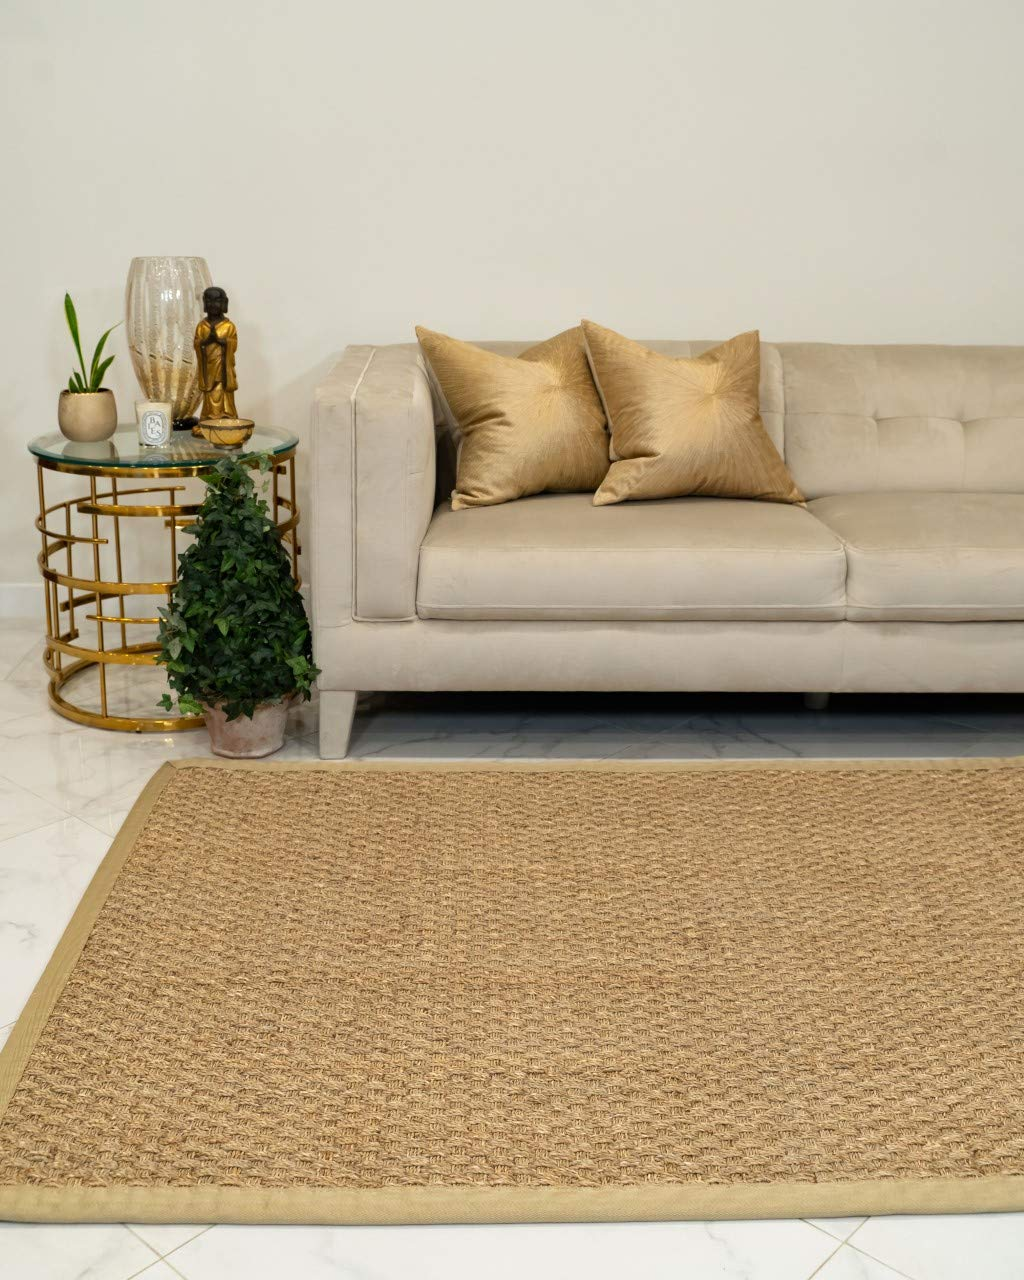 NaturalAreaRugs Lancaster Area Rug Natural Seagrass Hand-Crafted Khaki Wide Canvas Border, 5 x 8